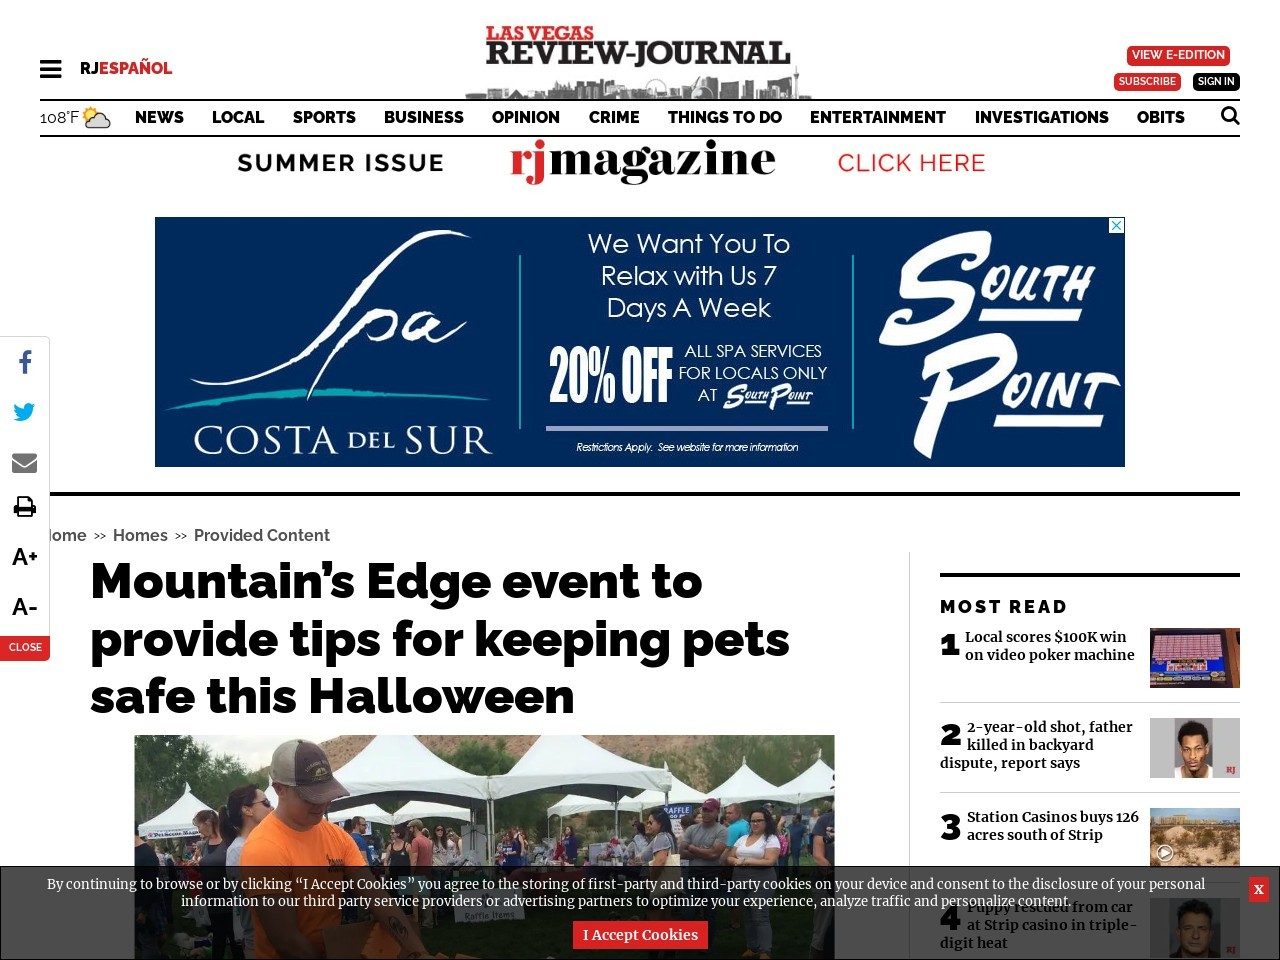 Mountain's Edge event to provide tips for keeping pets safe this Halloween